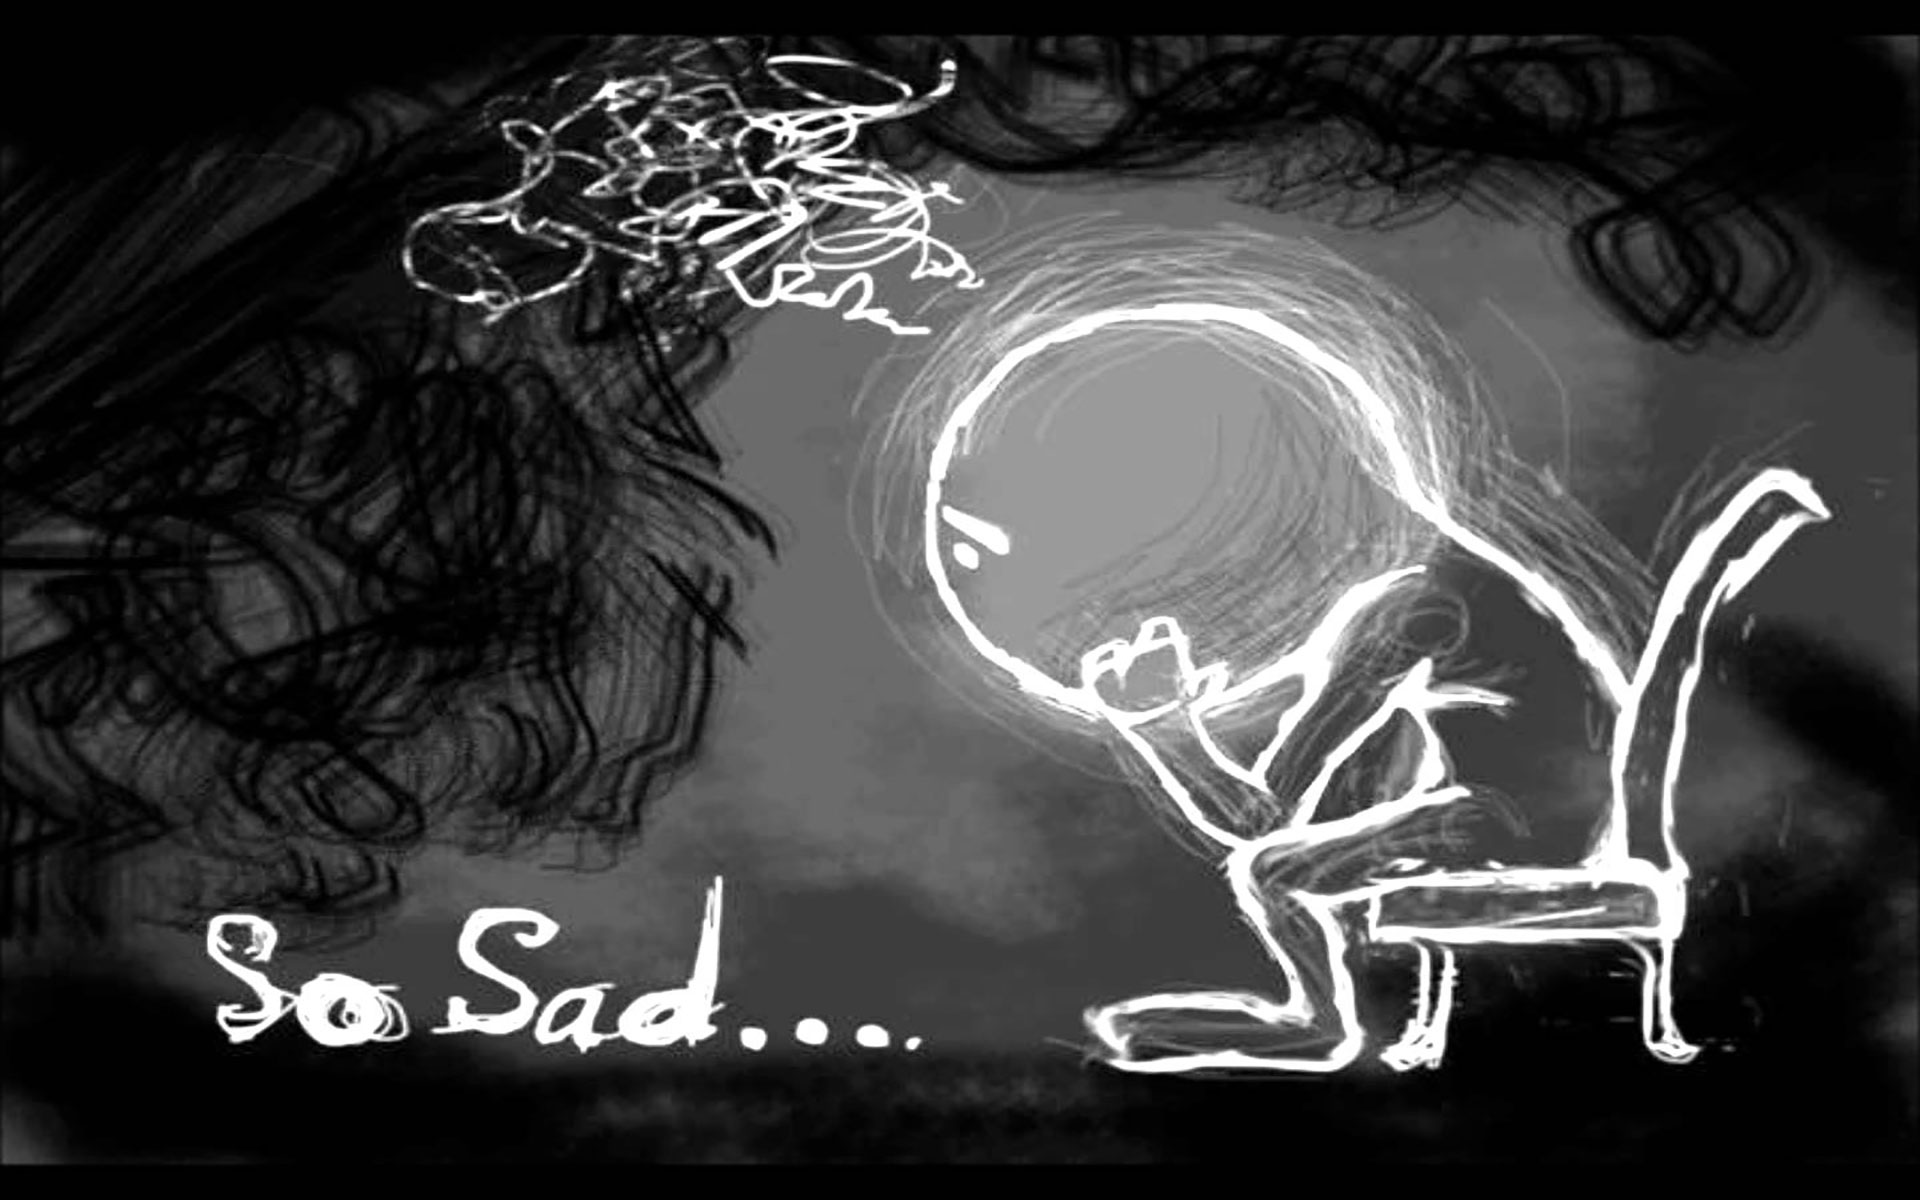 Wallpaper download boy - Sad Wallpaper Download